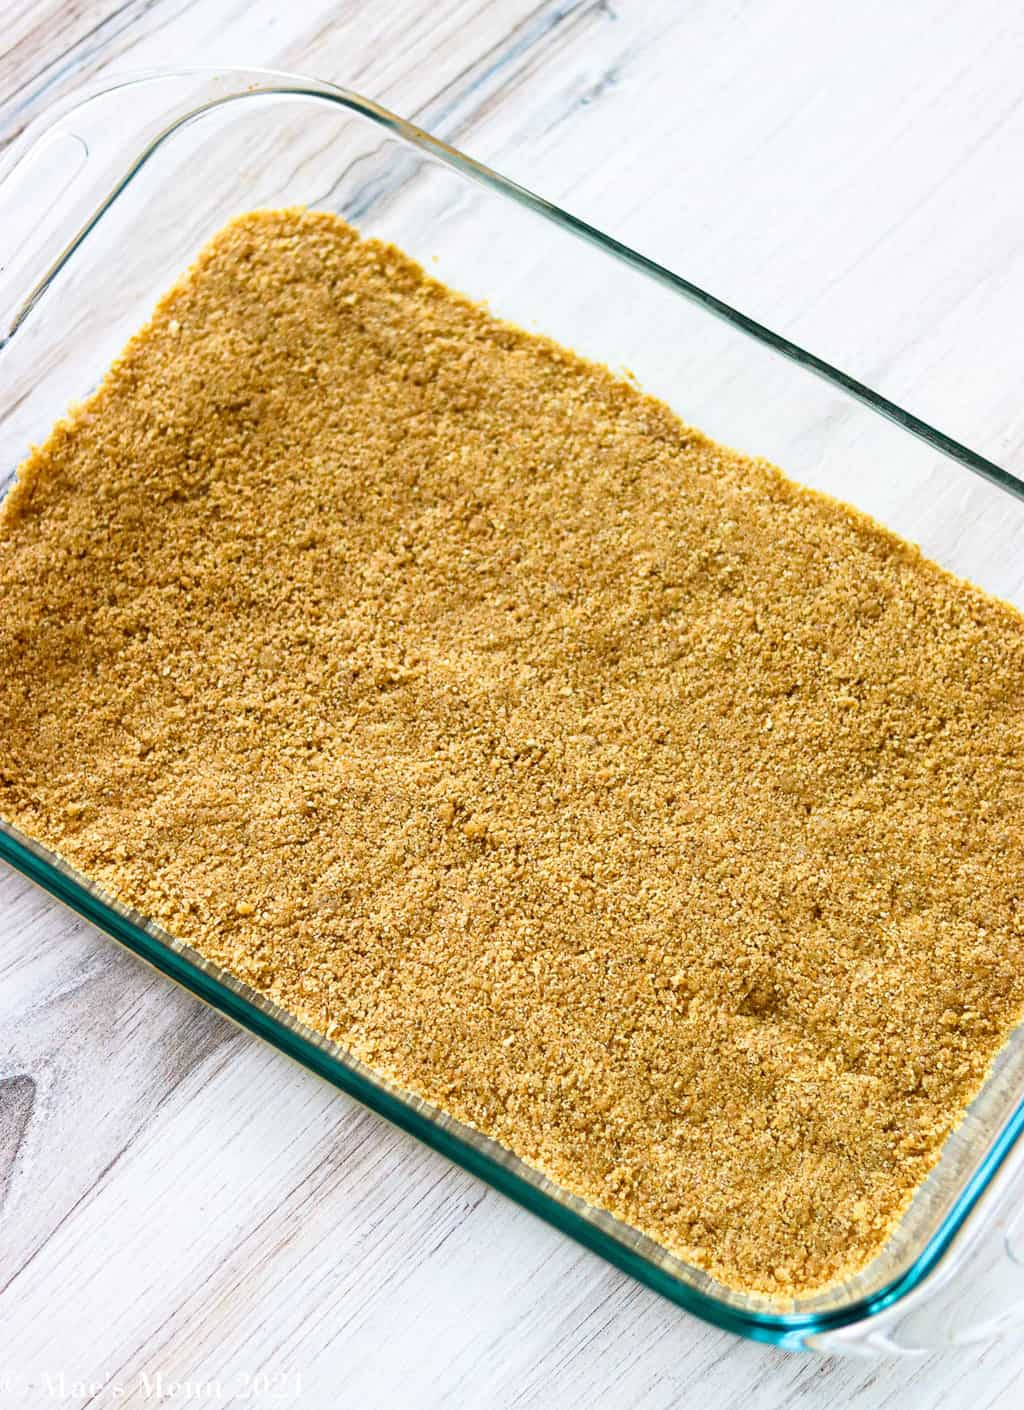 Graham cracker crust pressed into a baking pan